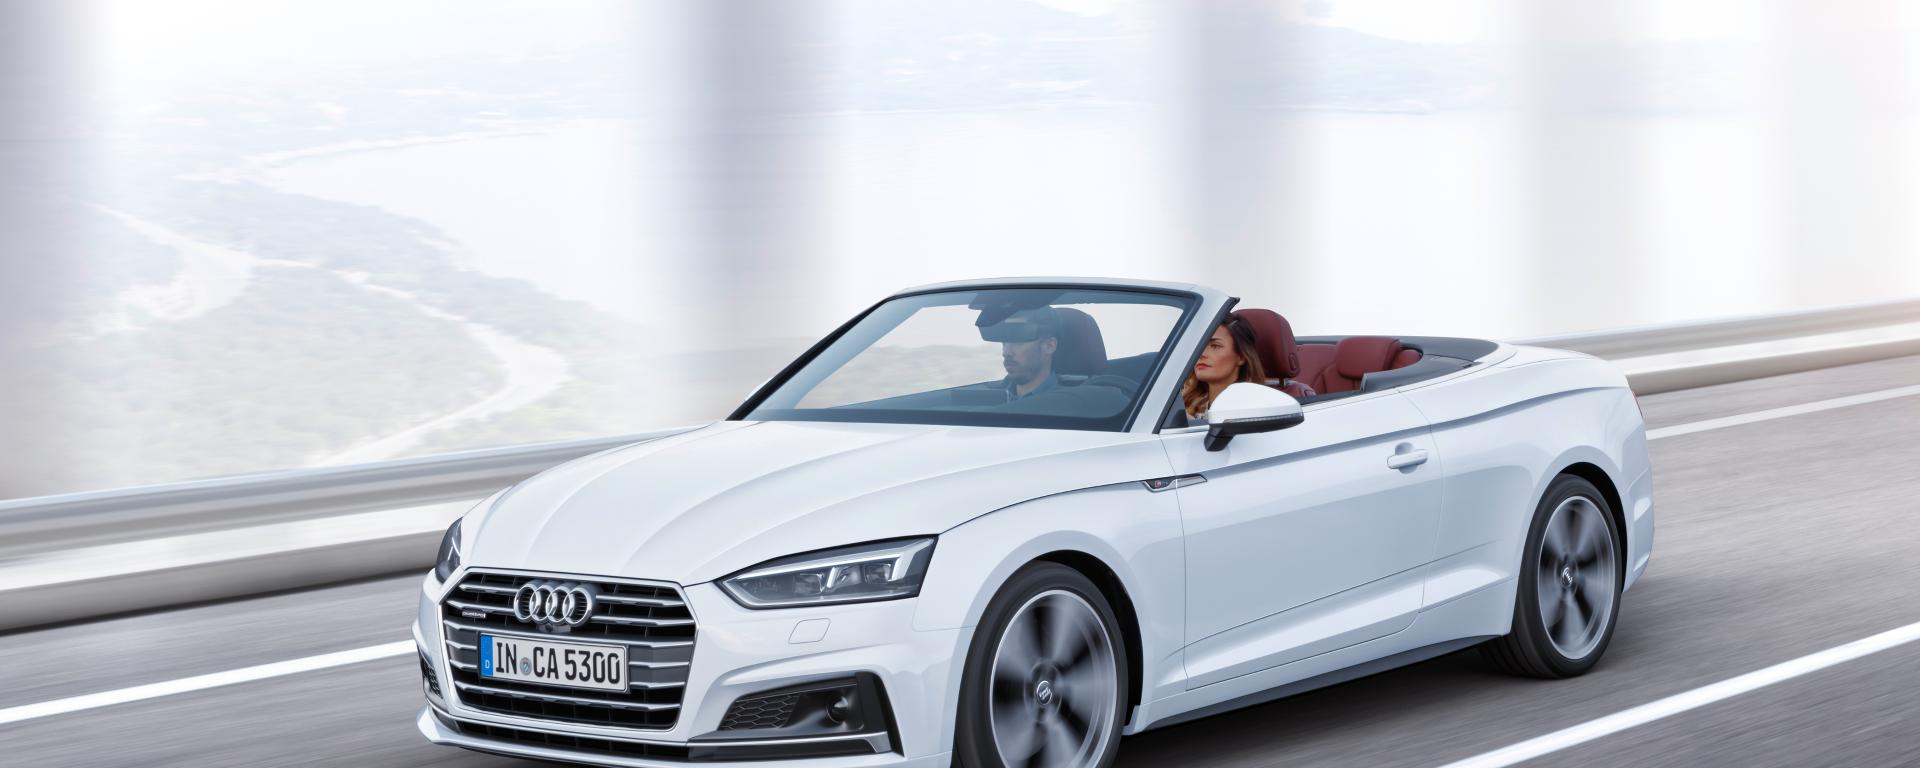 Audi A5 Cabriolet leasen